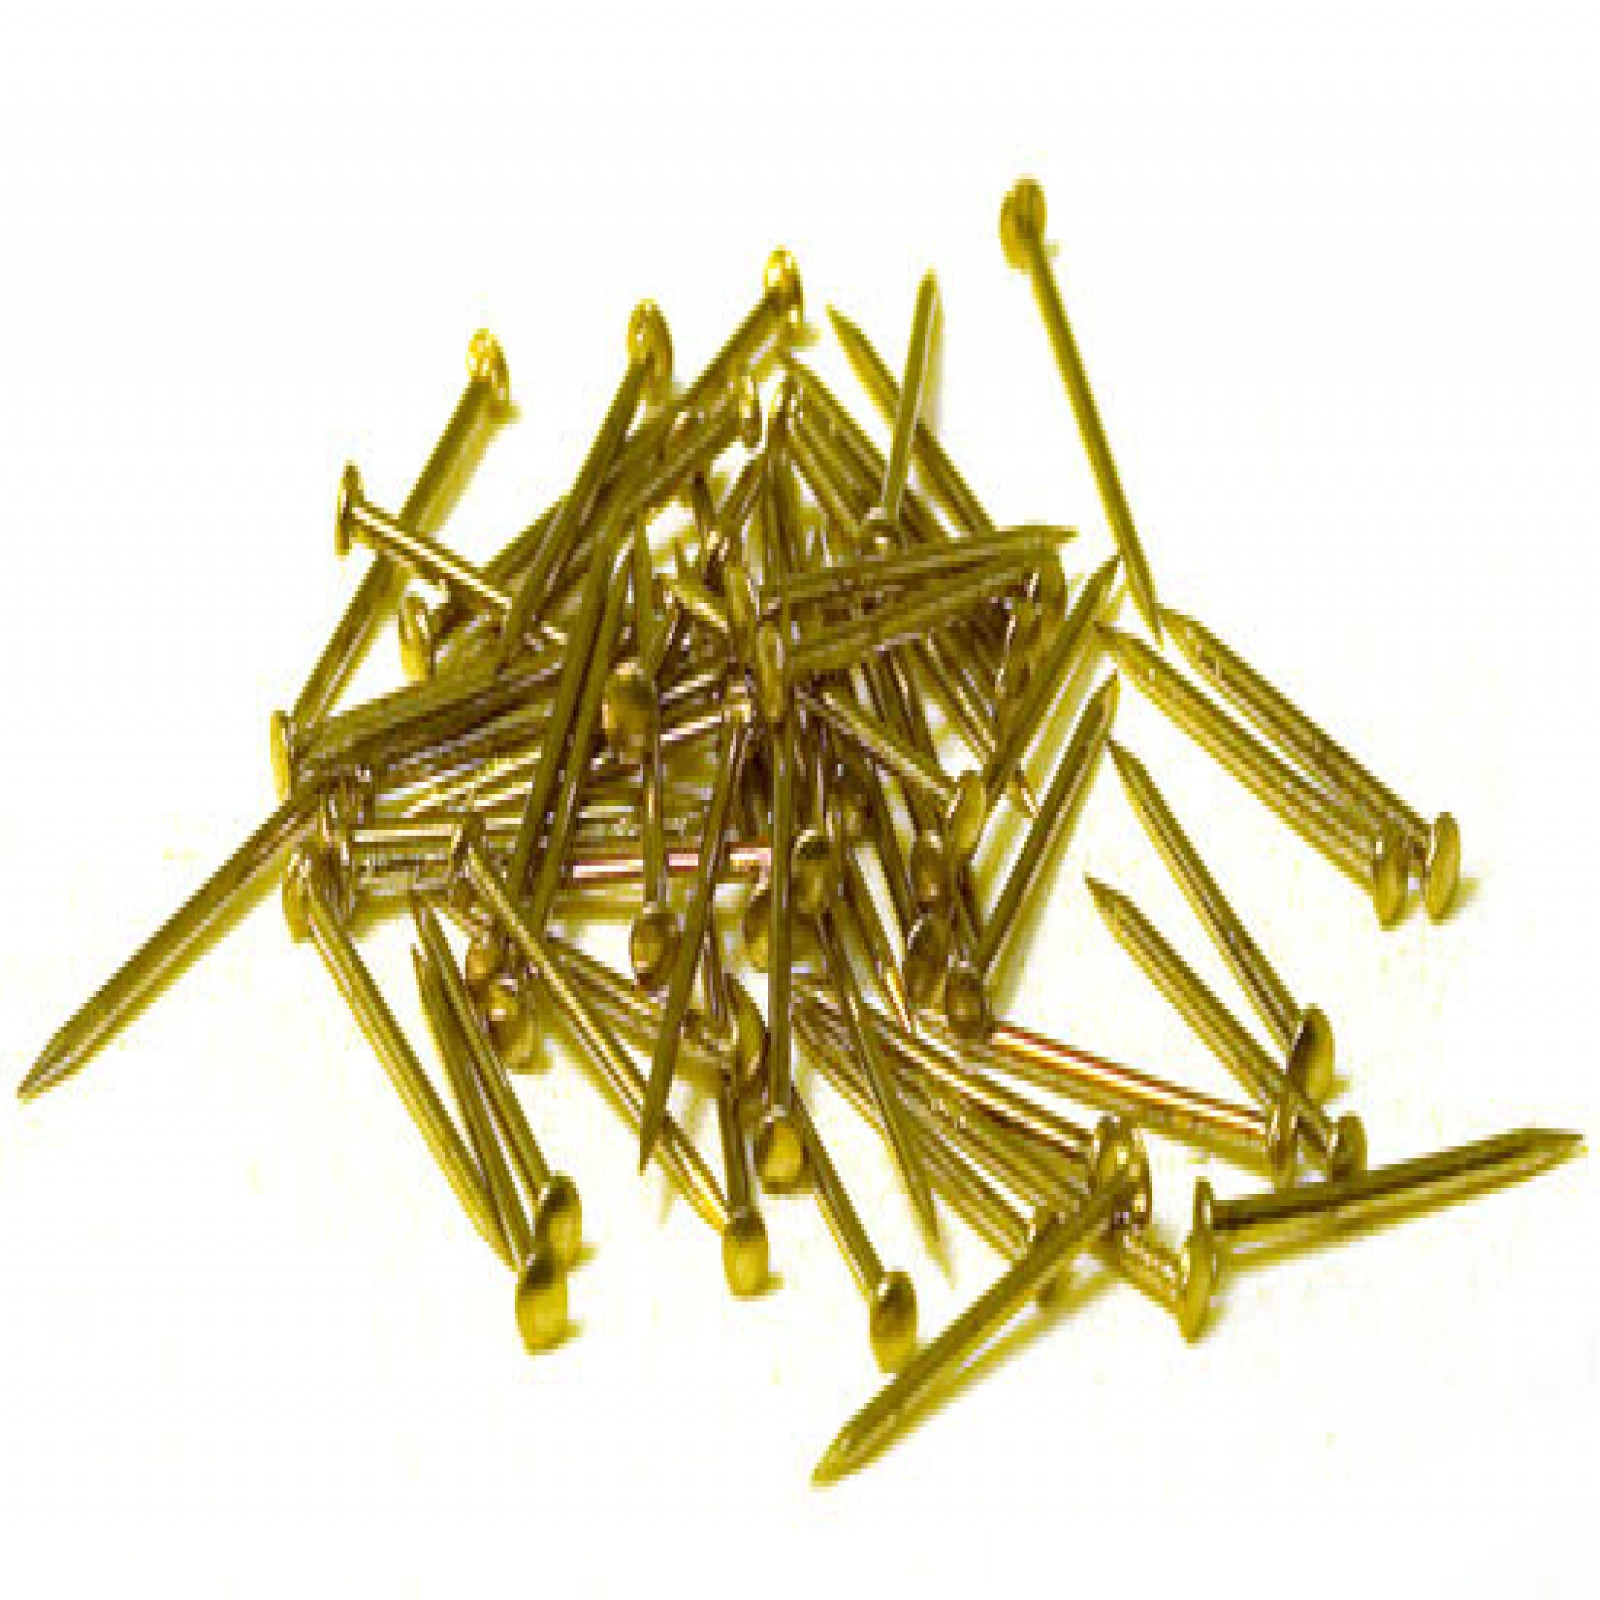 COATED BRASS NAILS  .028 x 1/2